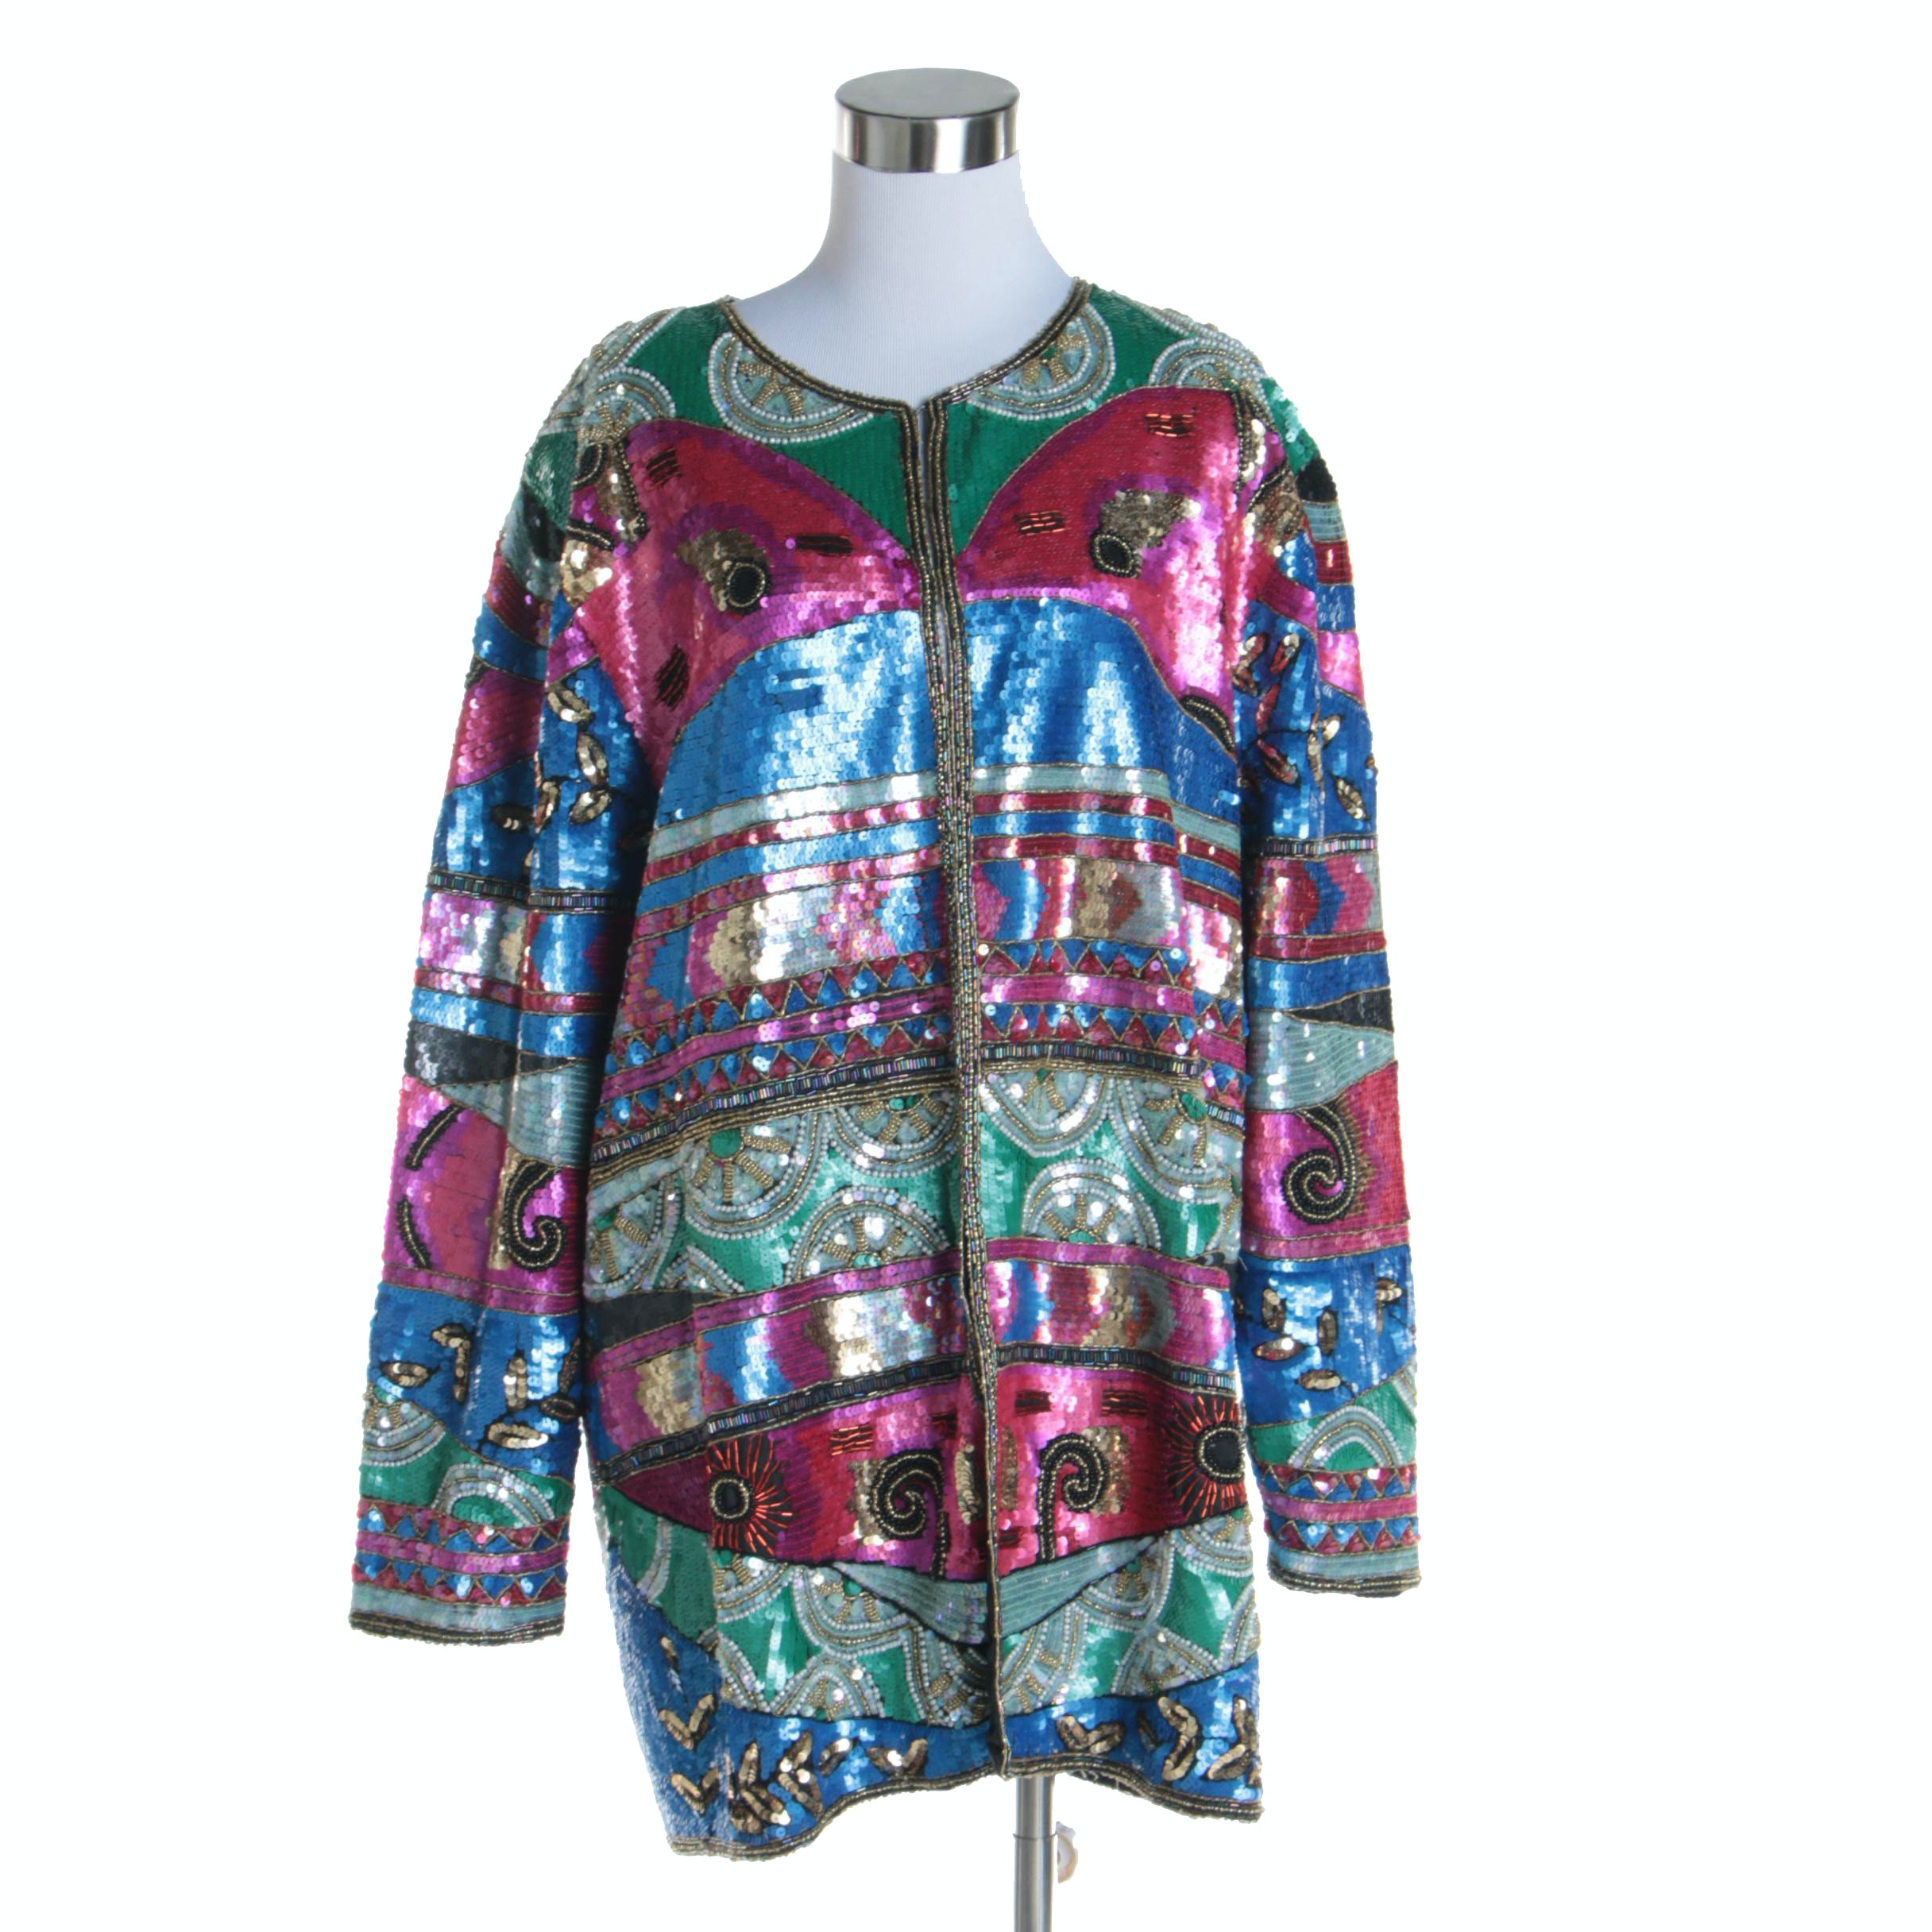 Women's Vintage Gunit Multicolored Silk Jacket with Sequin Embellishments